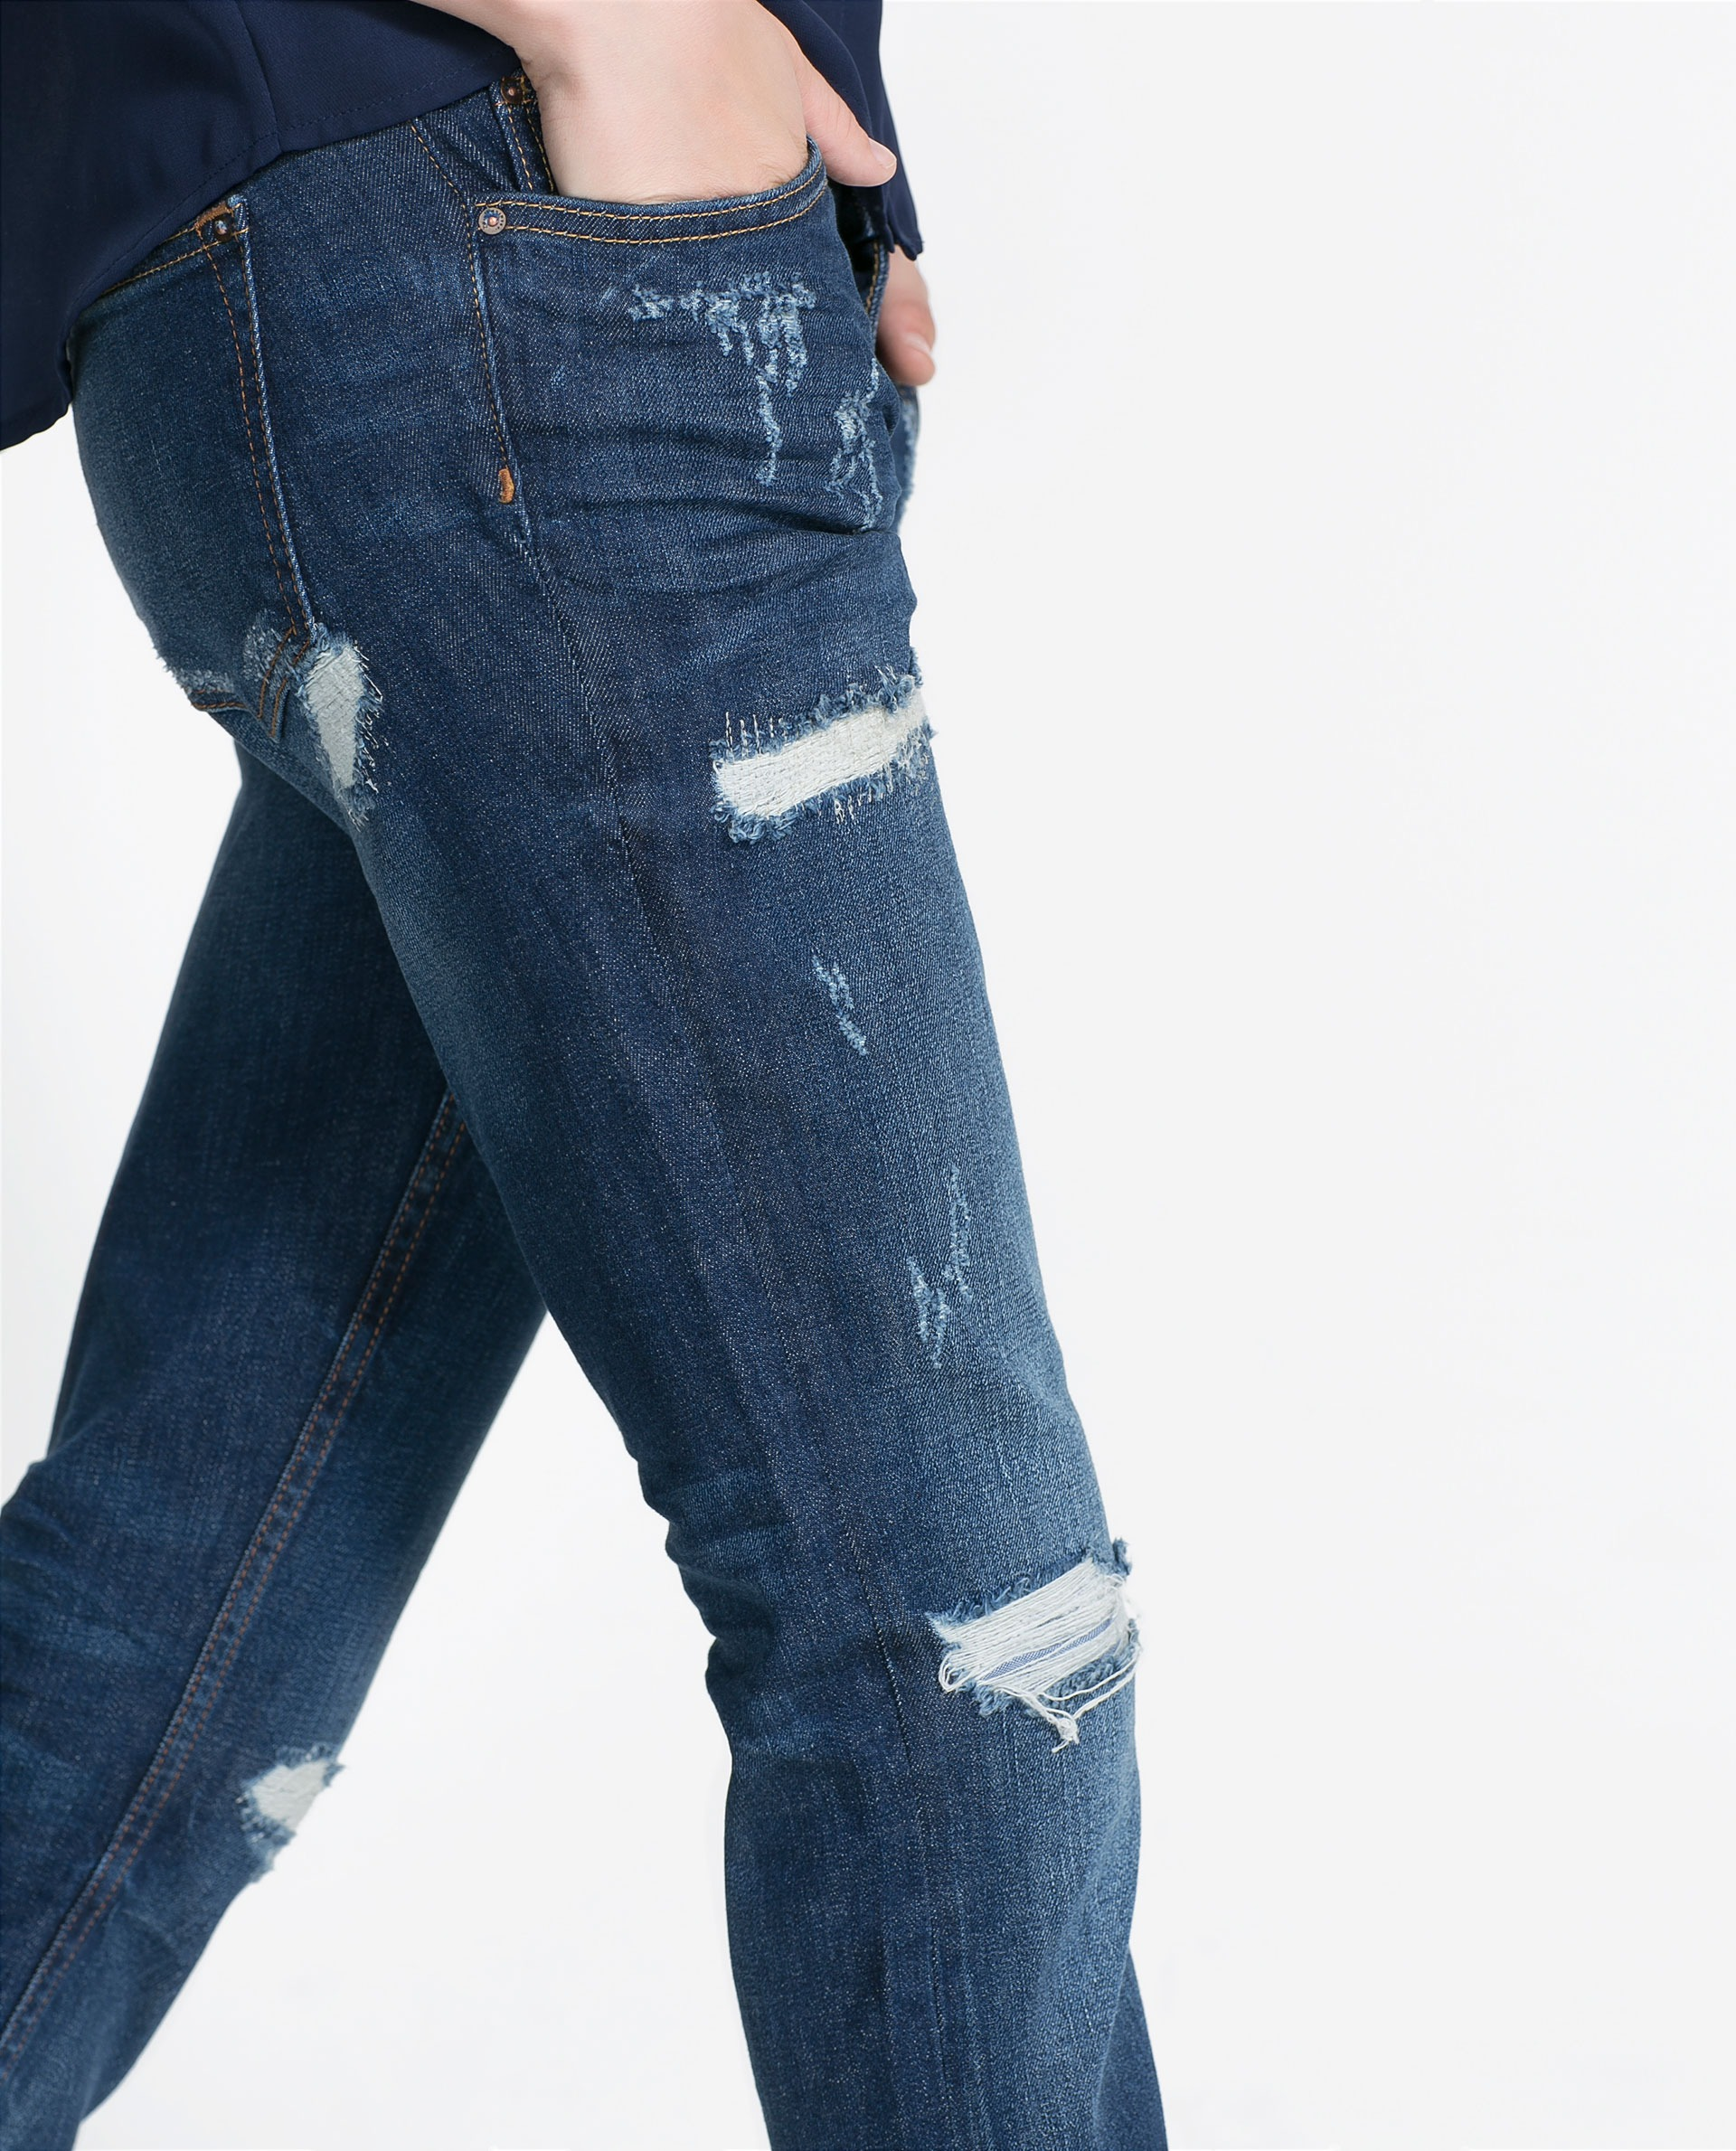 Womens Denim Jeans Manufacturer